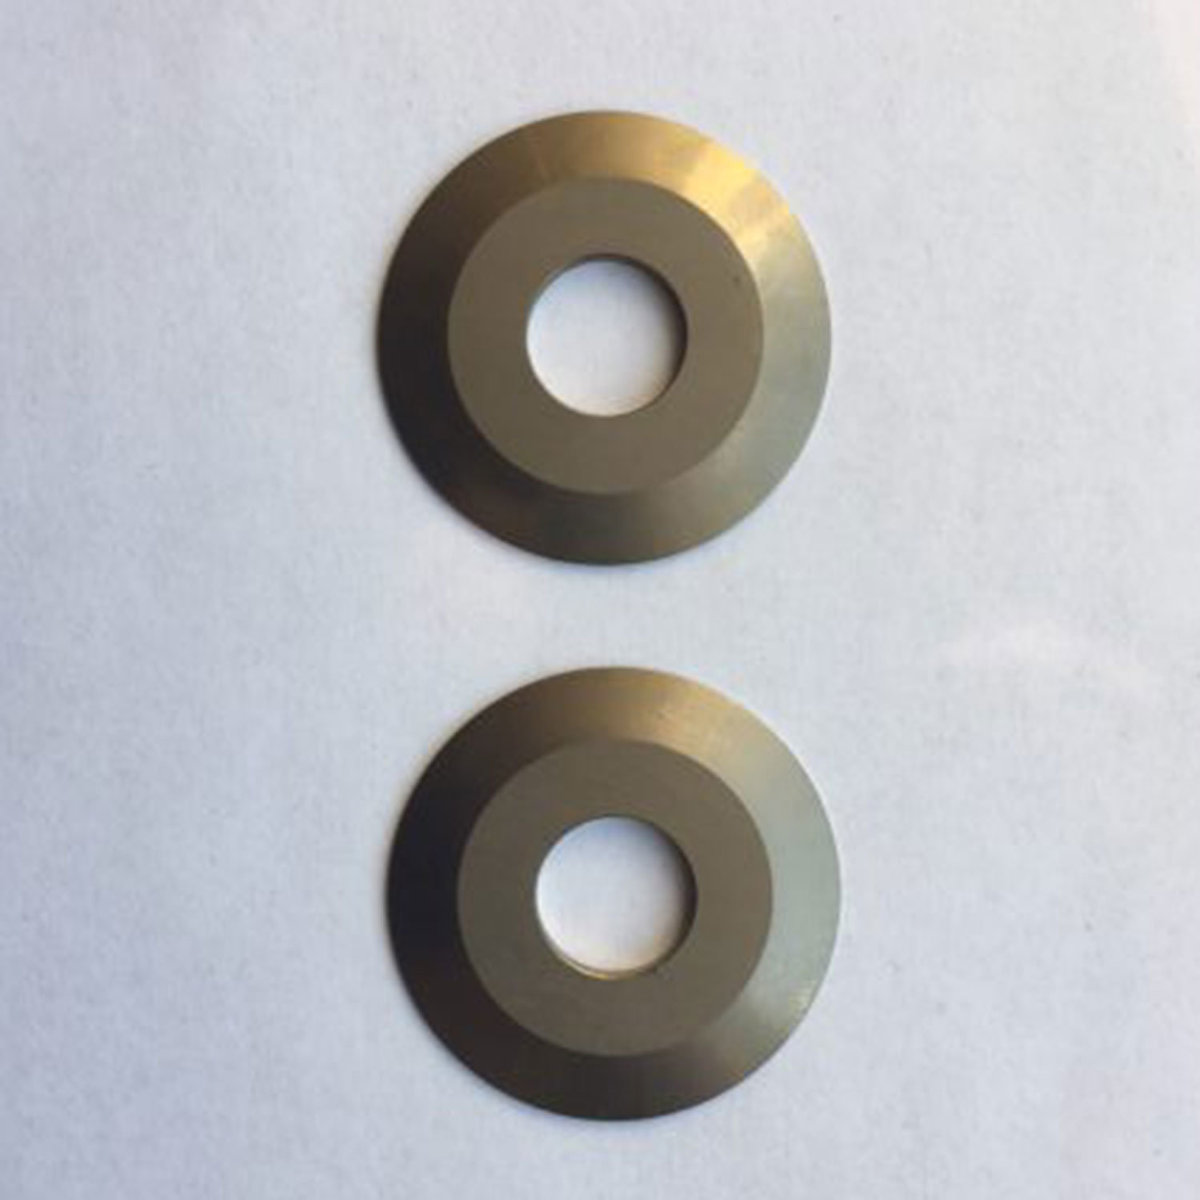 Safety Speed Mfg Cutting Wheel For Dust Free Cutters 1 Set